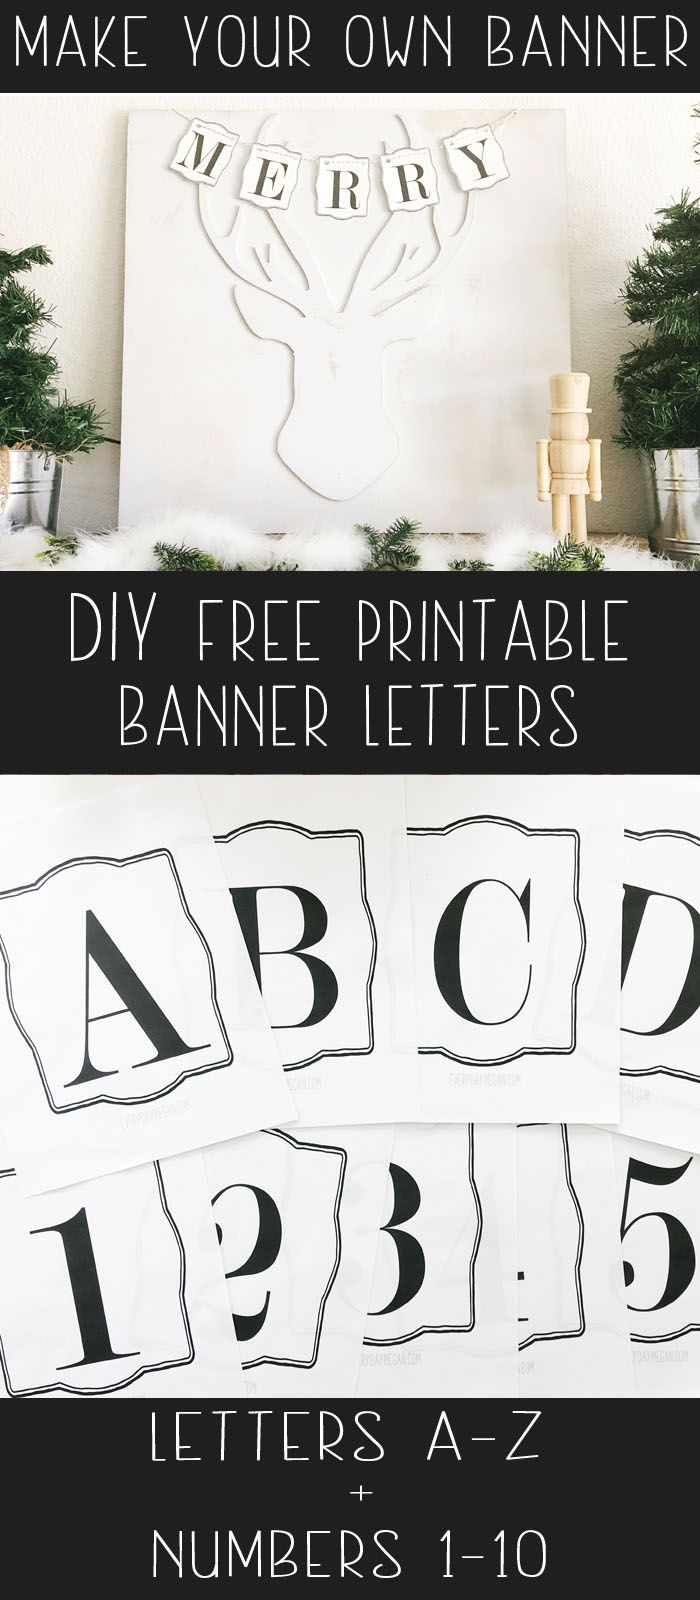 Free Printable Banner Letters Make Your Own Banner Diy